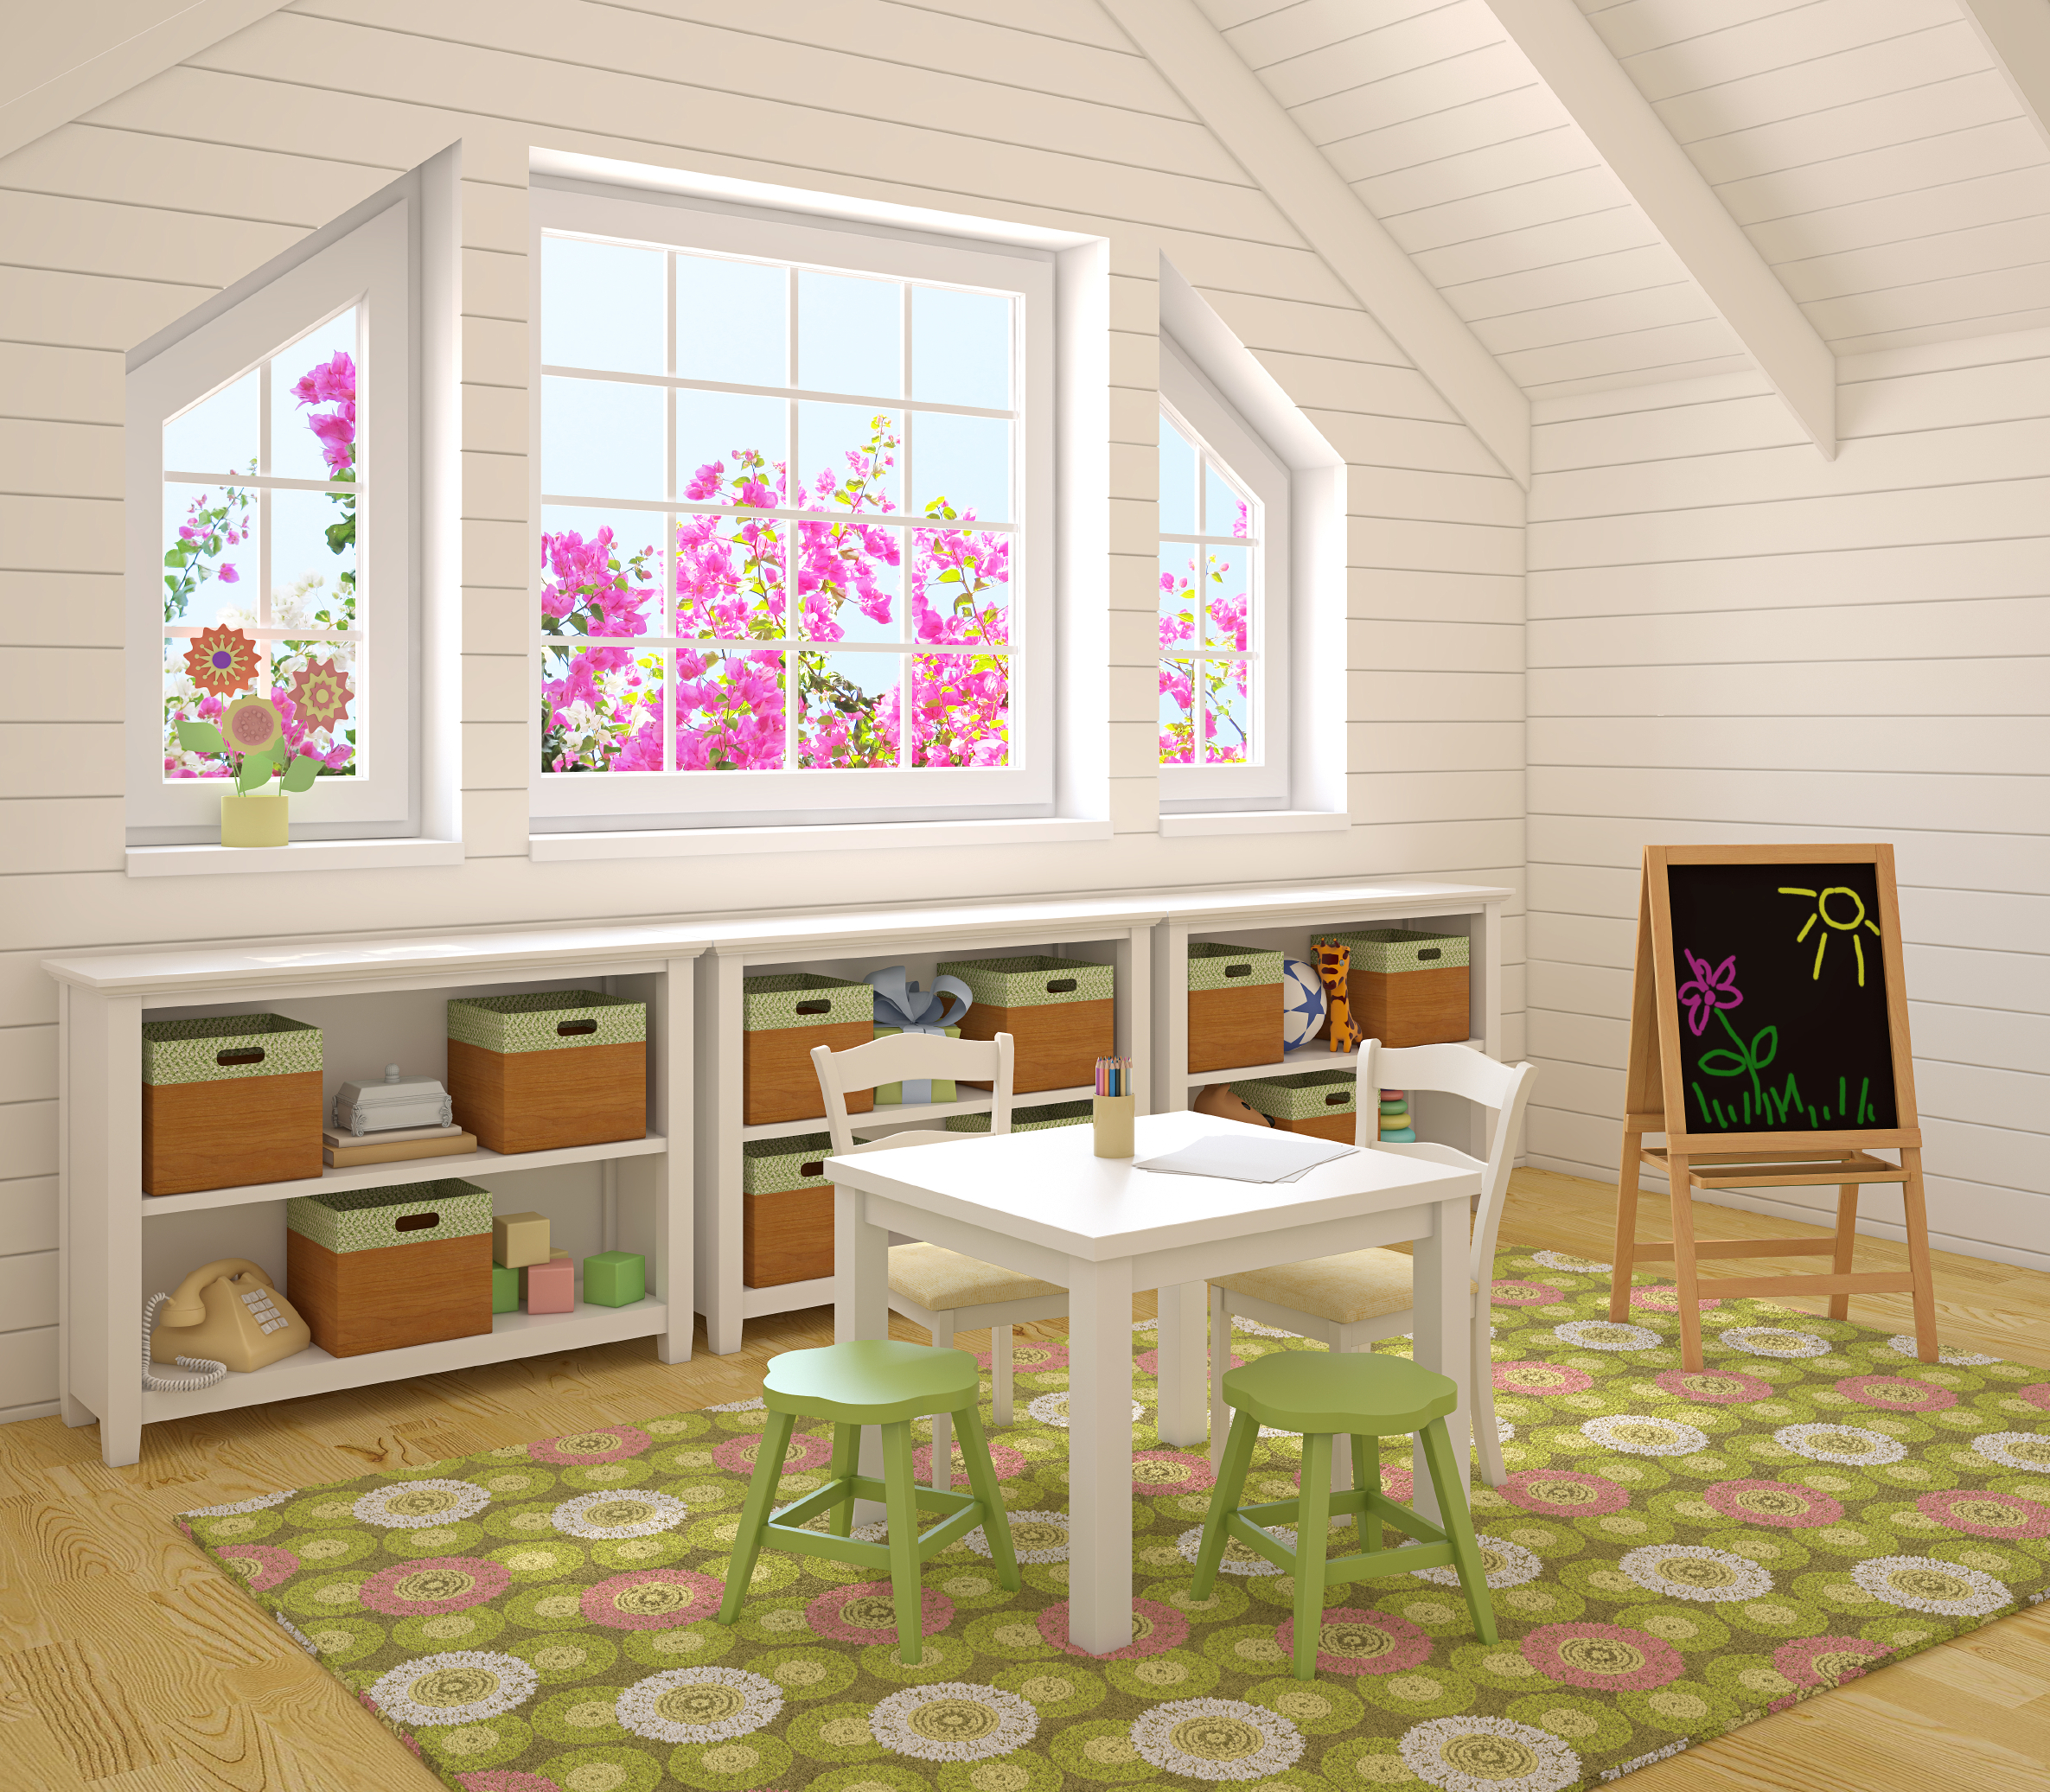 Remodelaholic | 12 Fun and Functional Playroom Ideas